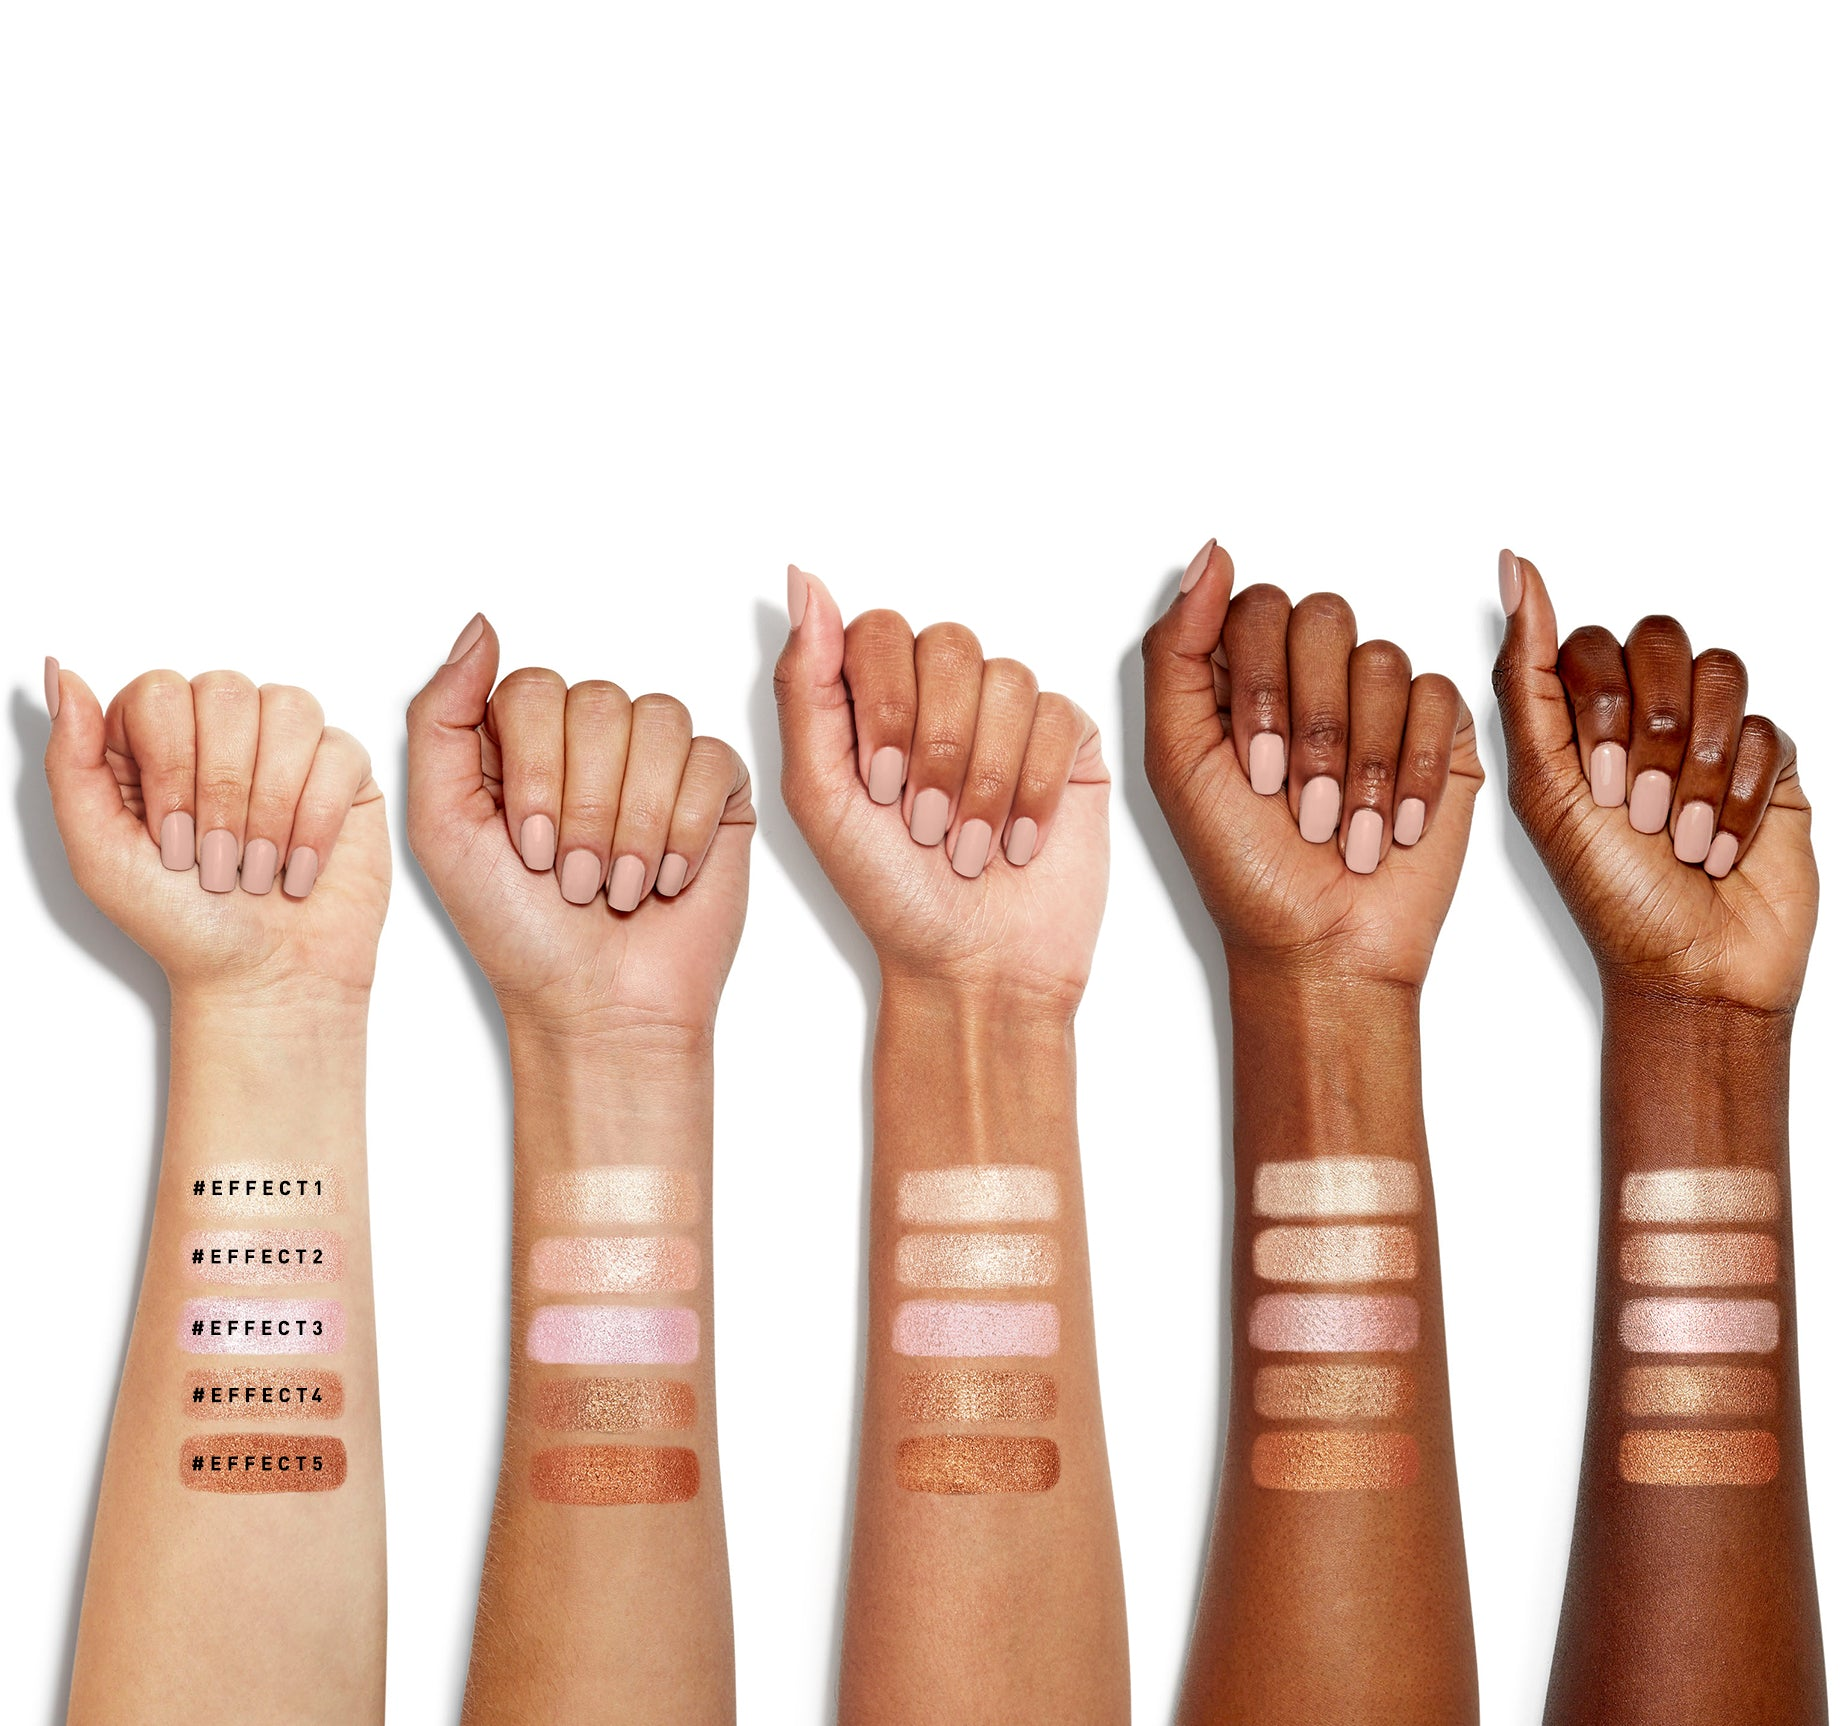 DIMENSION EFFECT HIGHLIGHT & CONTOUR STICKS #EFFECT11